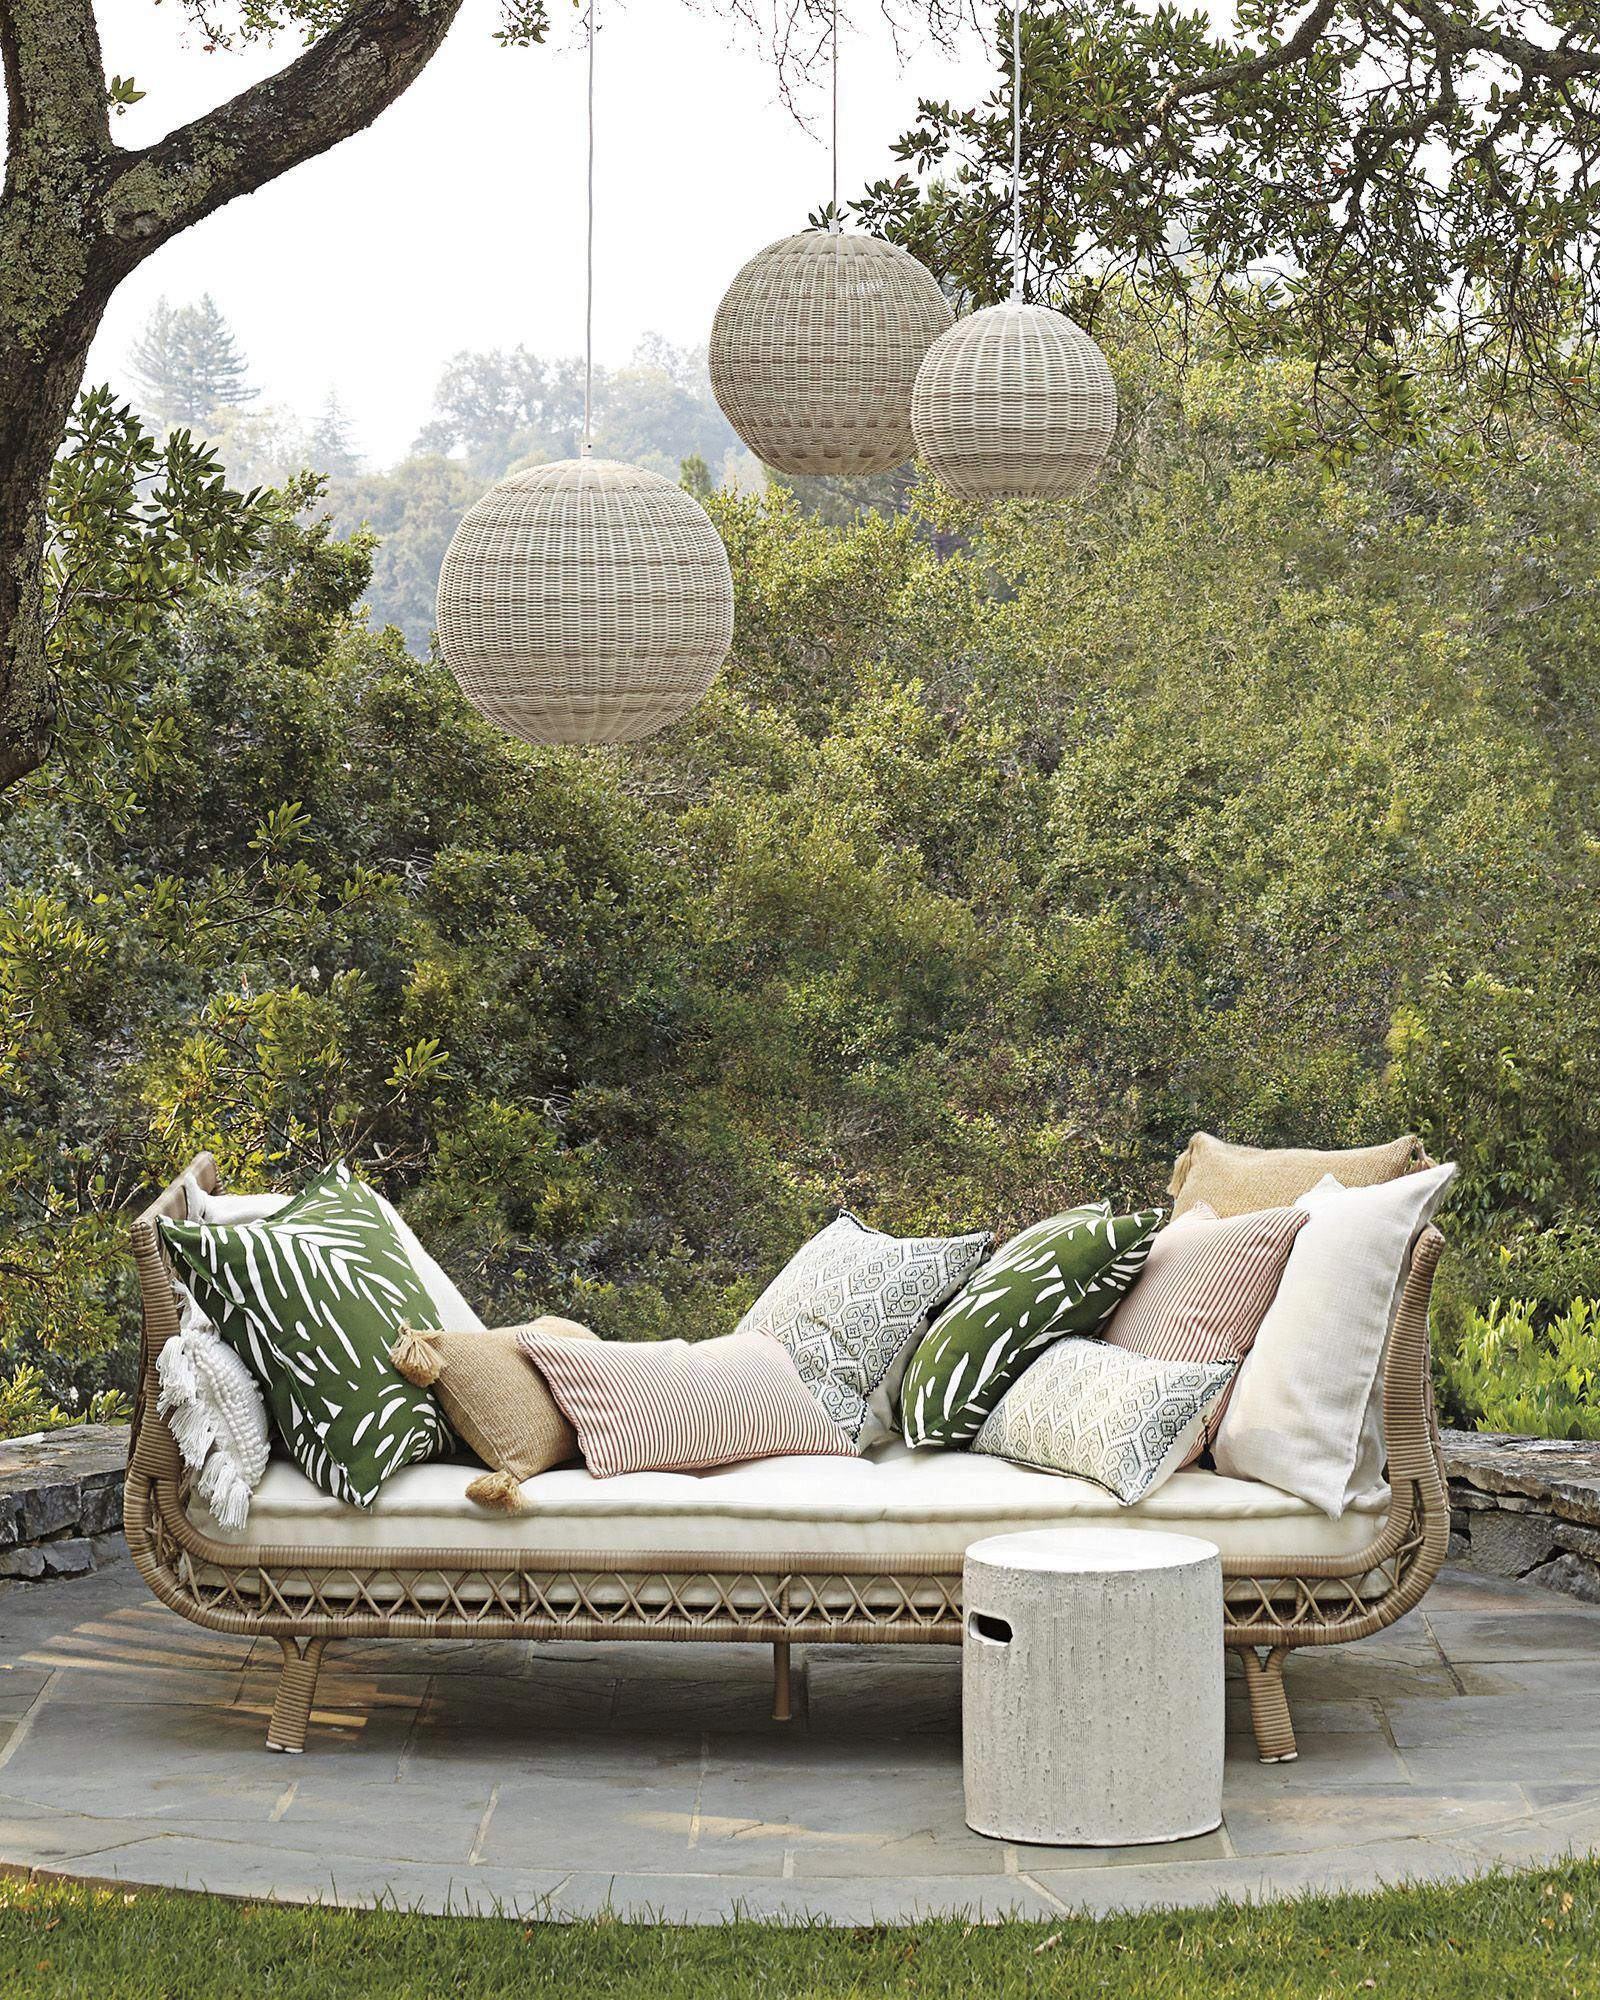 Pacifica Outdoor Pendant | Outdoor daybed, Outdoor rooms ...